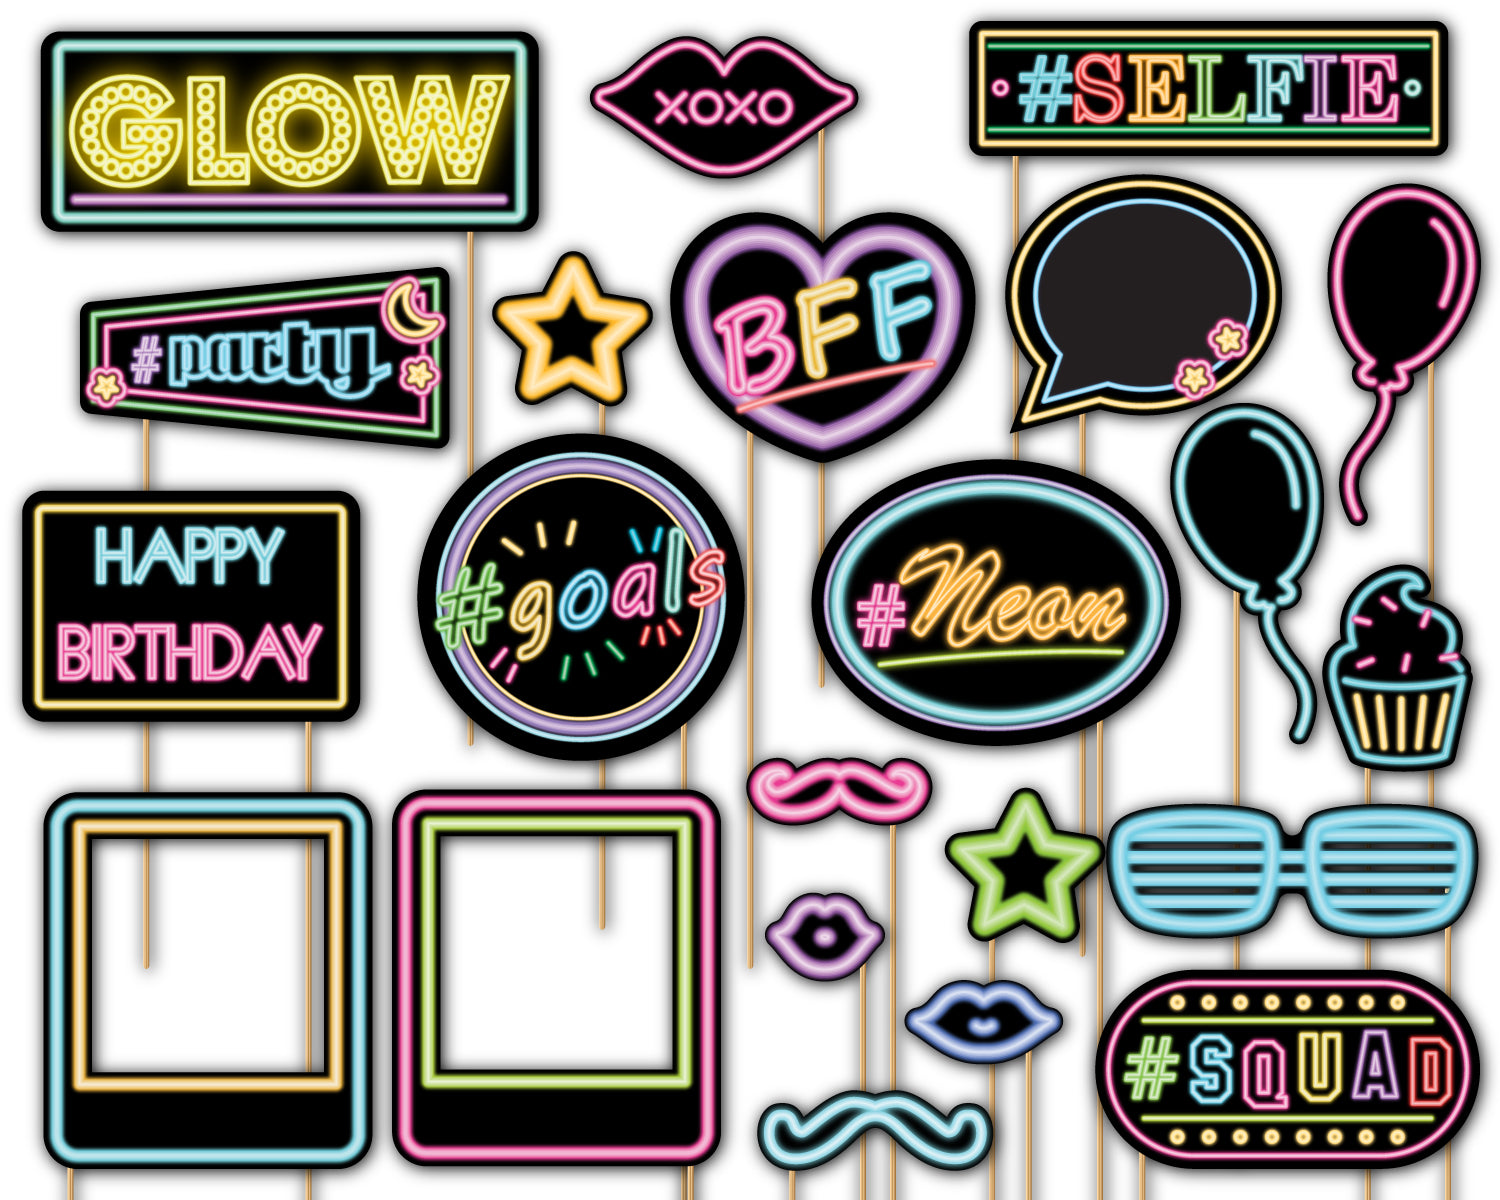 Glow Light Neon Photo Booth Props 20pcs Assembled - BirthdayGalore.com